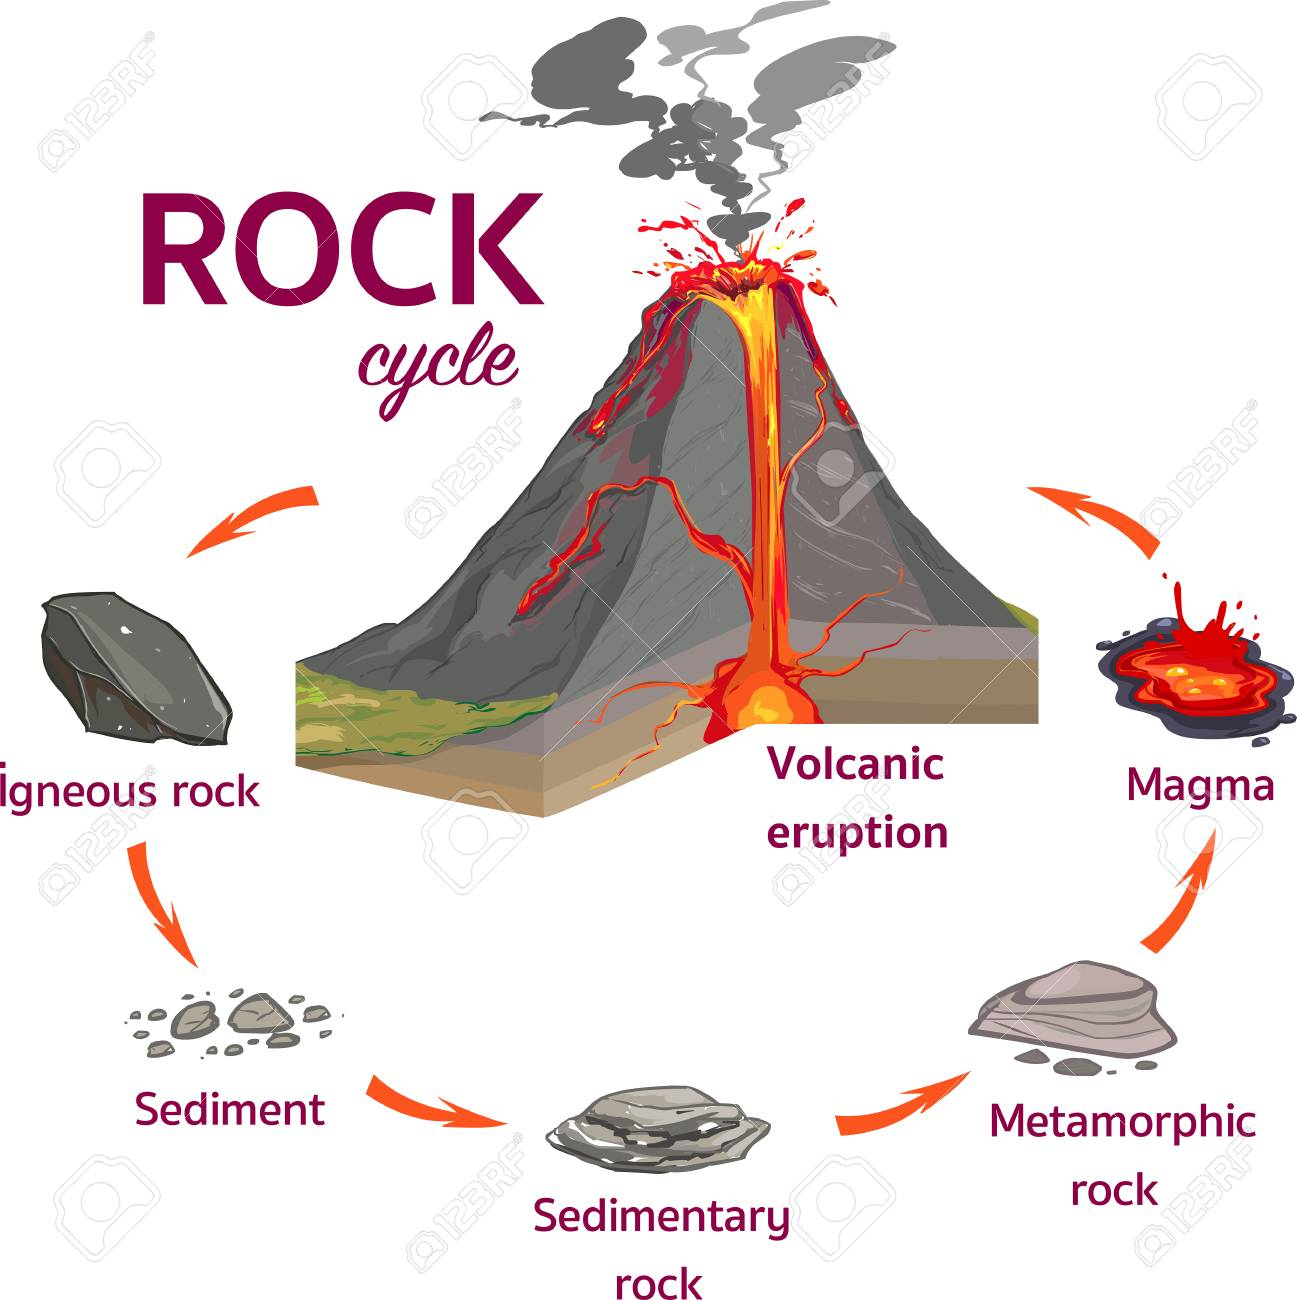 The Rock Cycle Vector Ä°llustration - 126263961